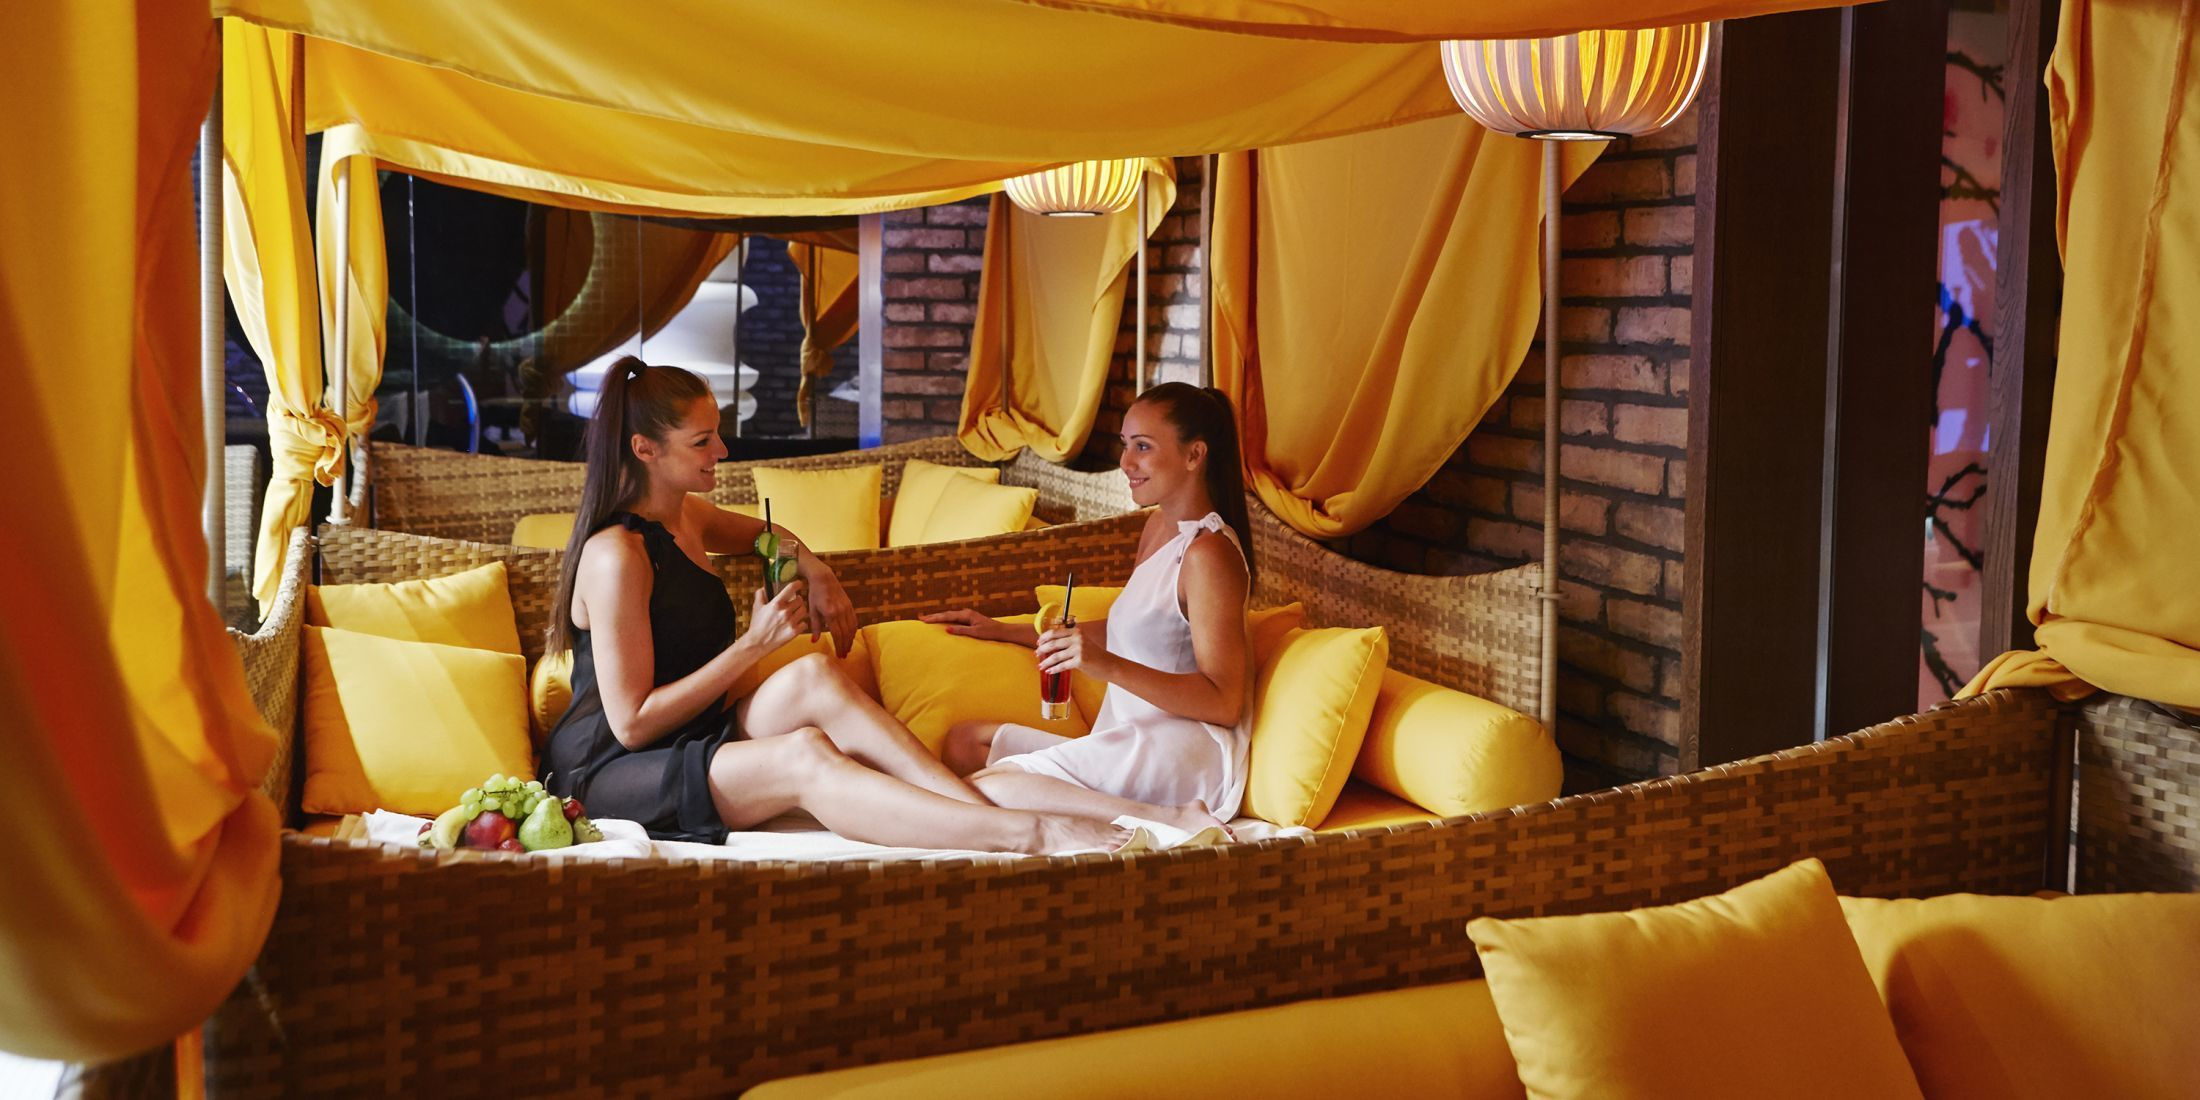 Yellow canopies are avaialble for guests to relax and lounge in.